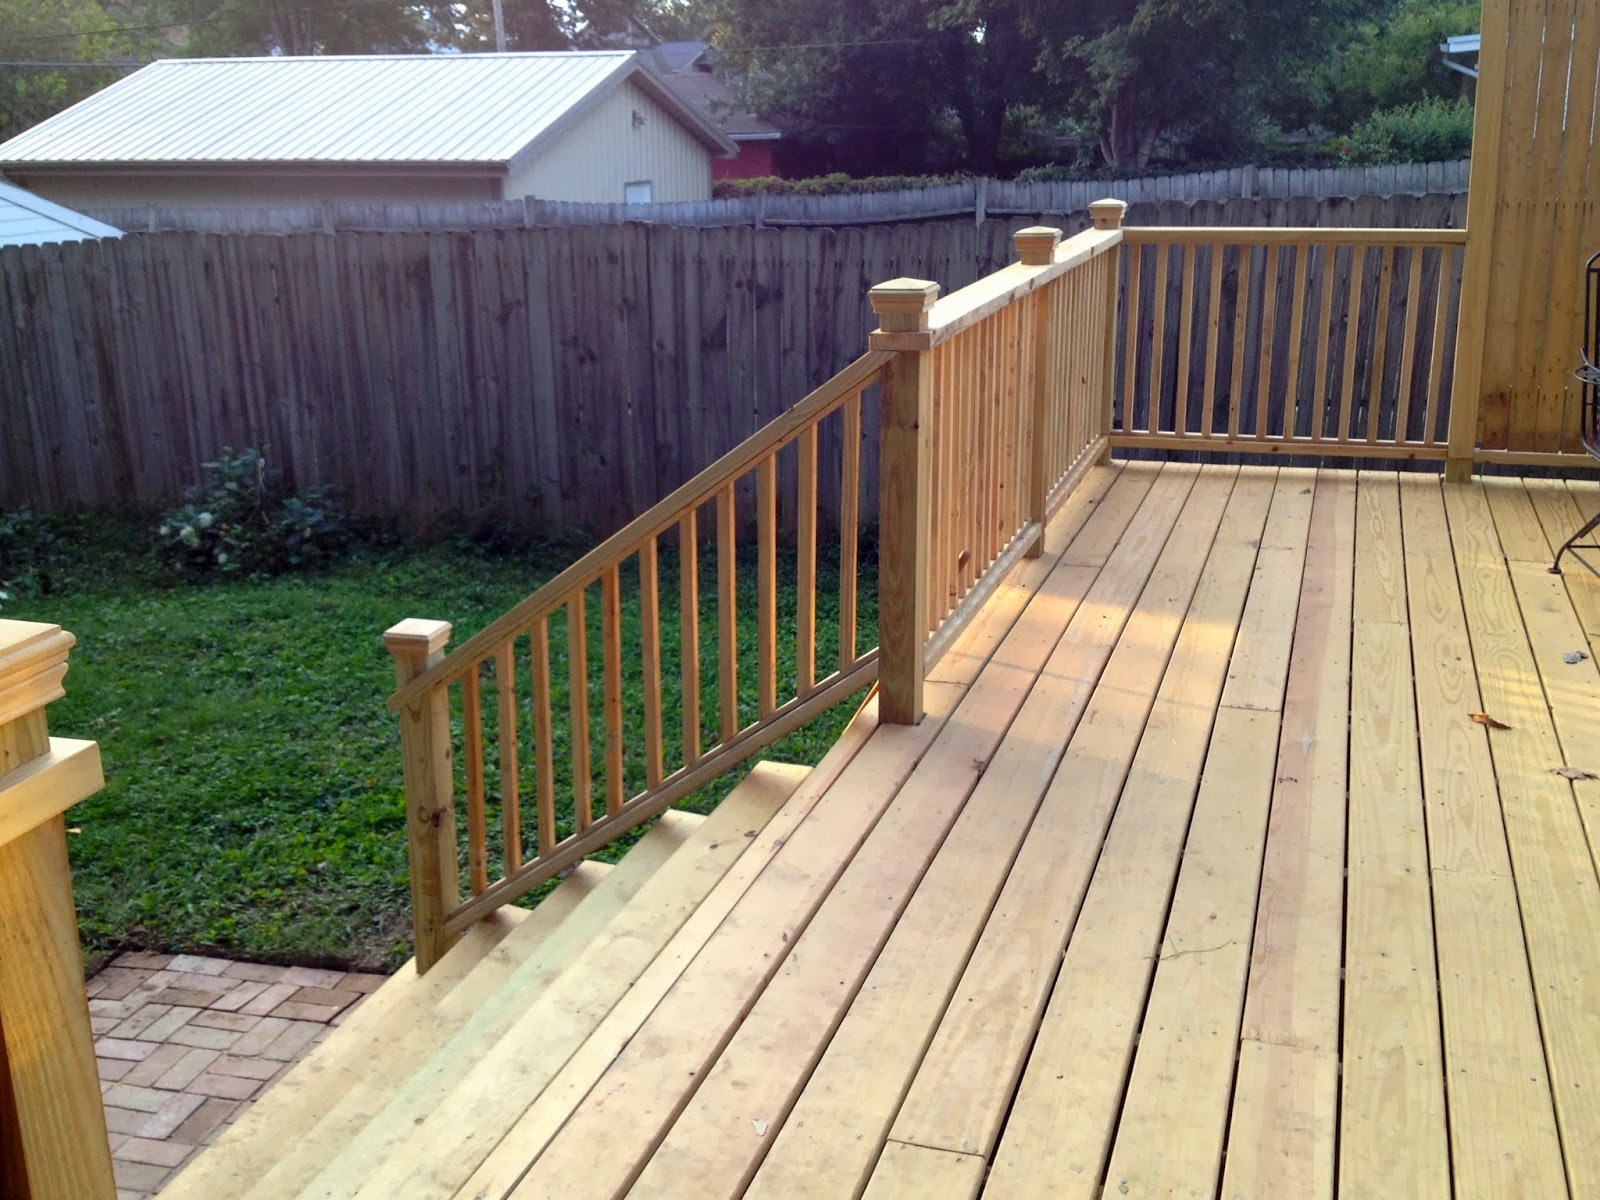 Mel & Liza: DIY Deck Railings